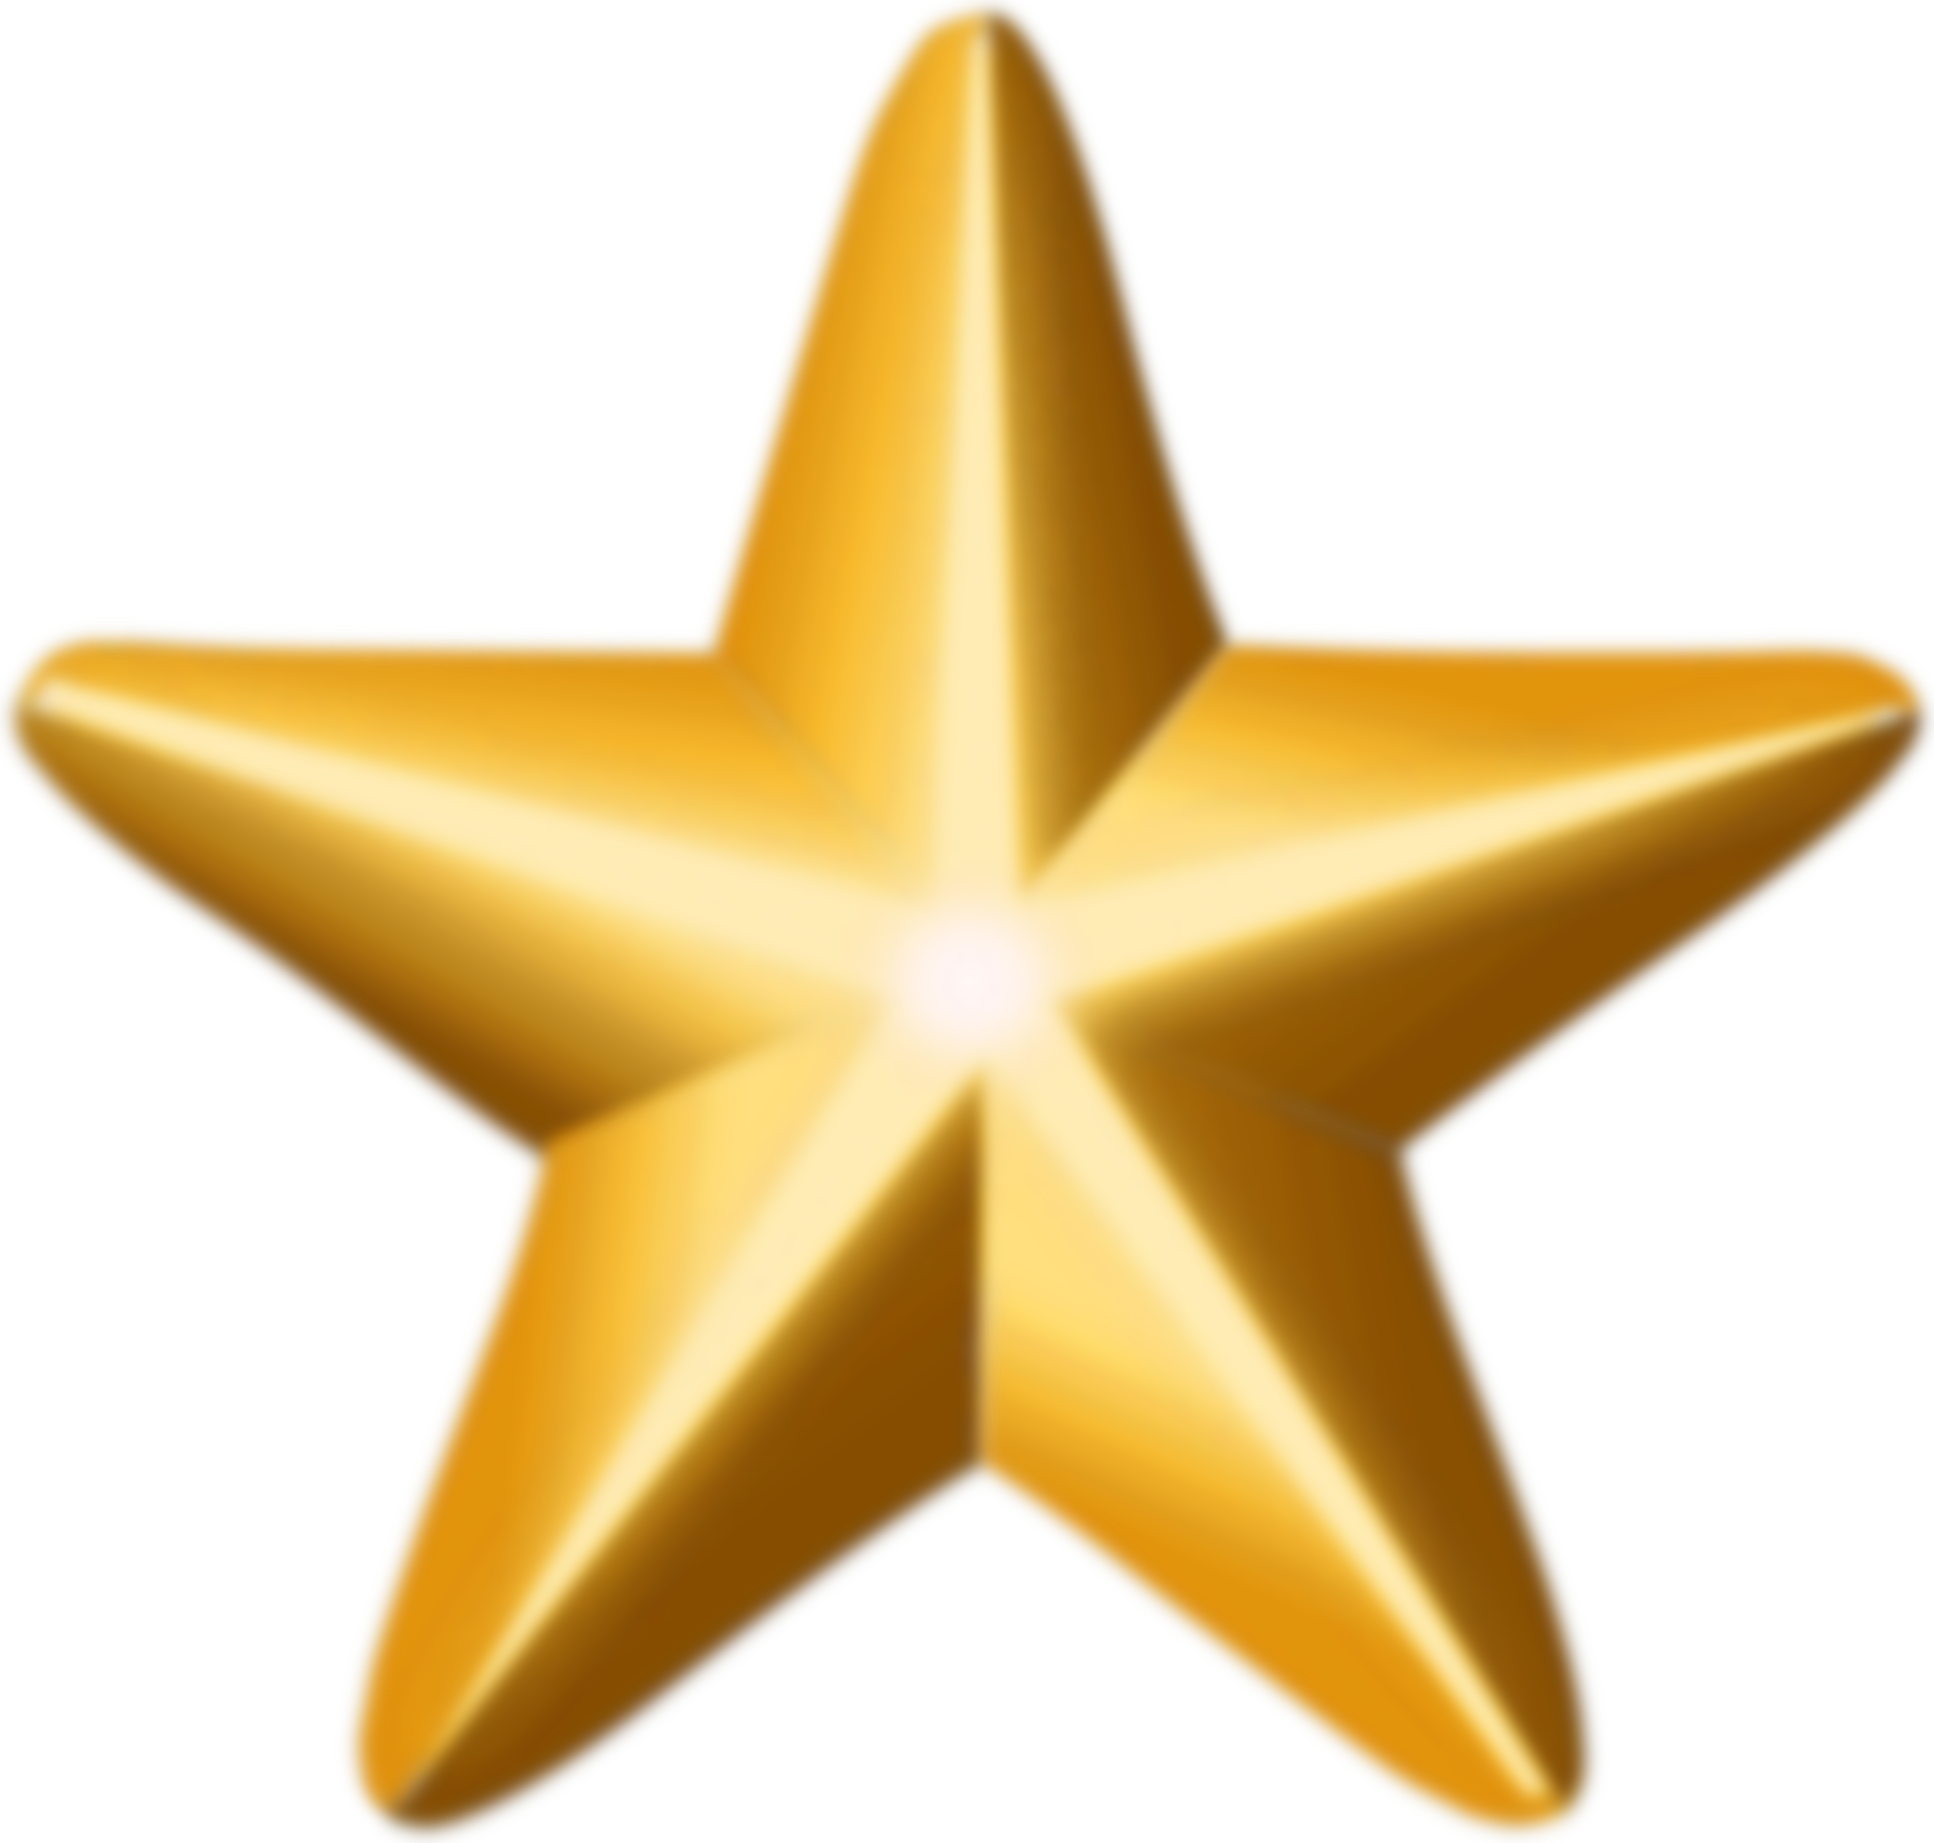 File award star wikimedia. 5 gold stars png picture download